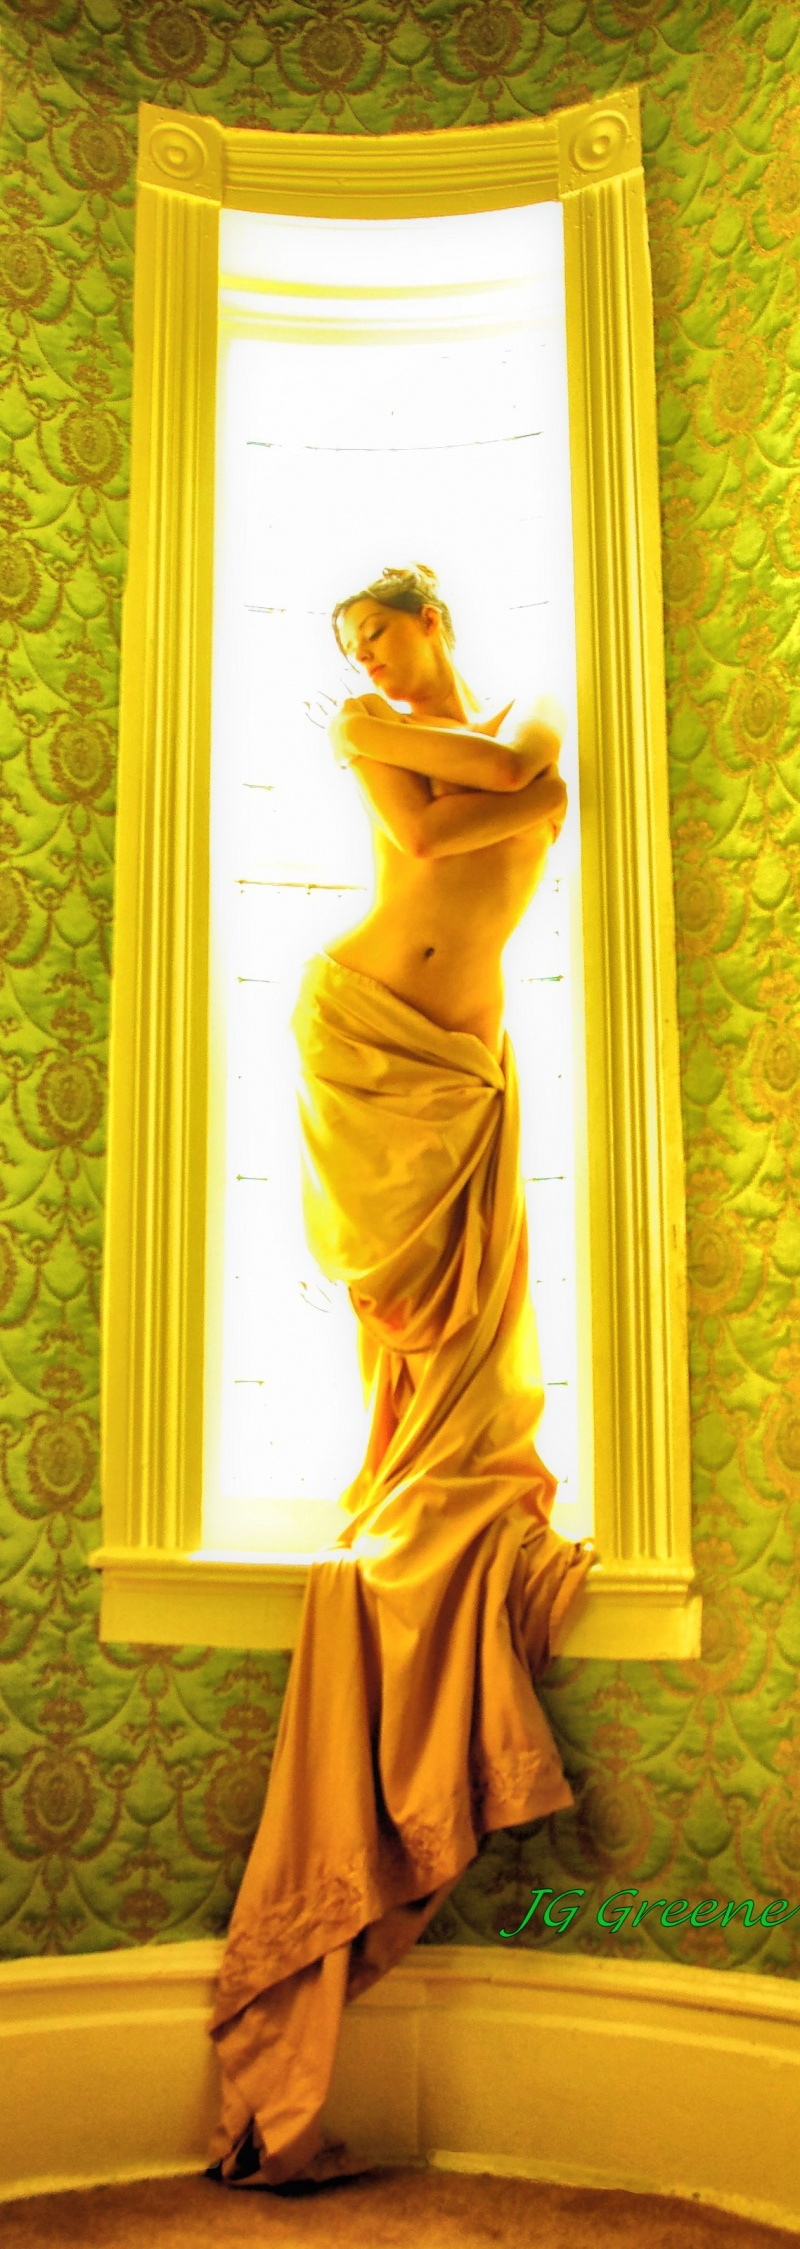 New Orleans Oct 03, 2012 JG Greene Verdigris Photography 2012 Statuesque.....POTD winner